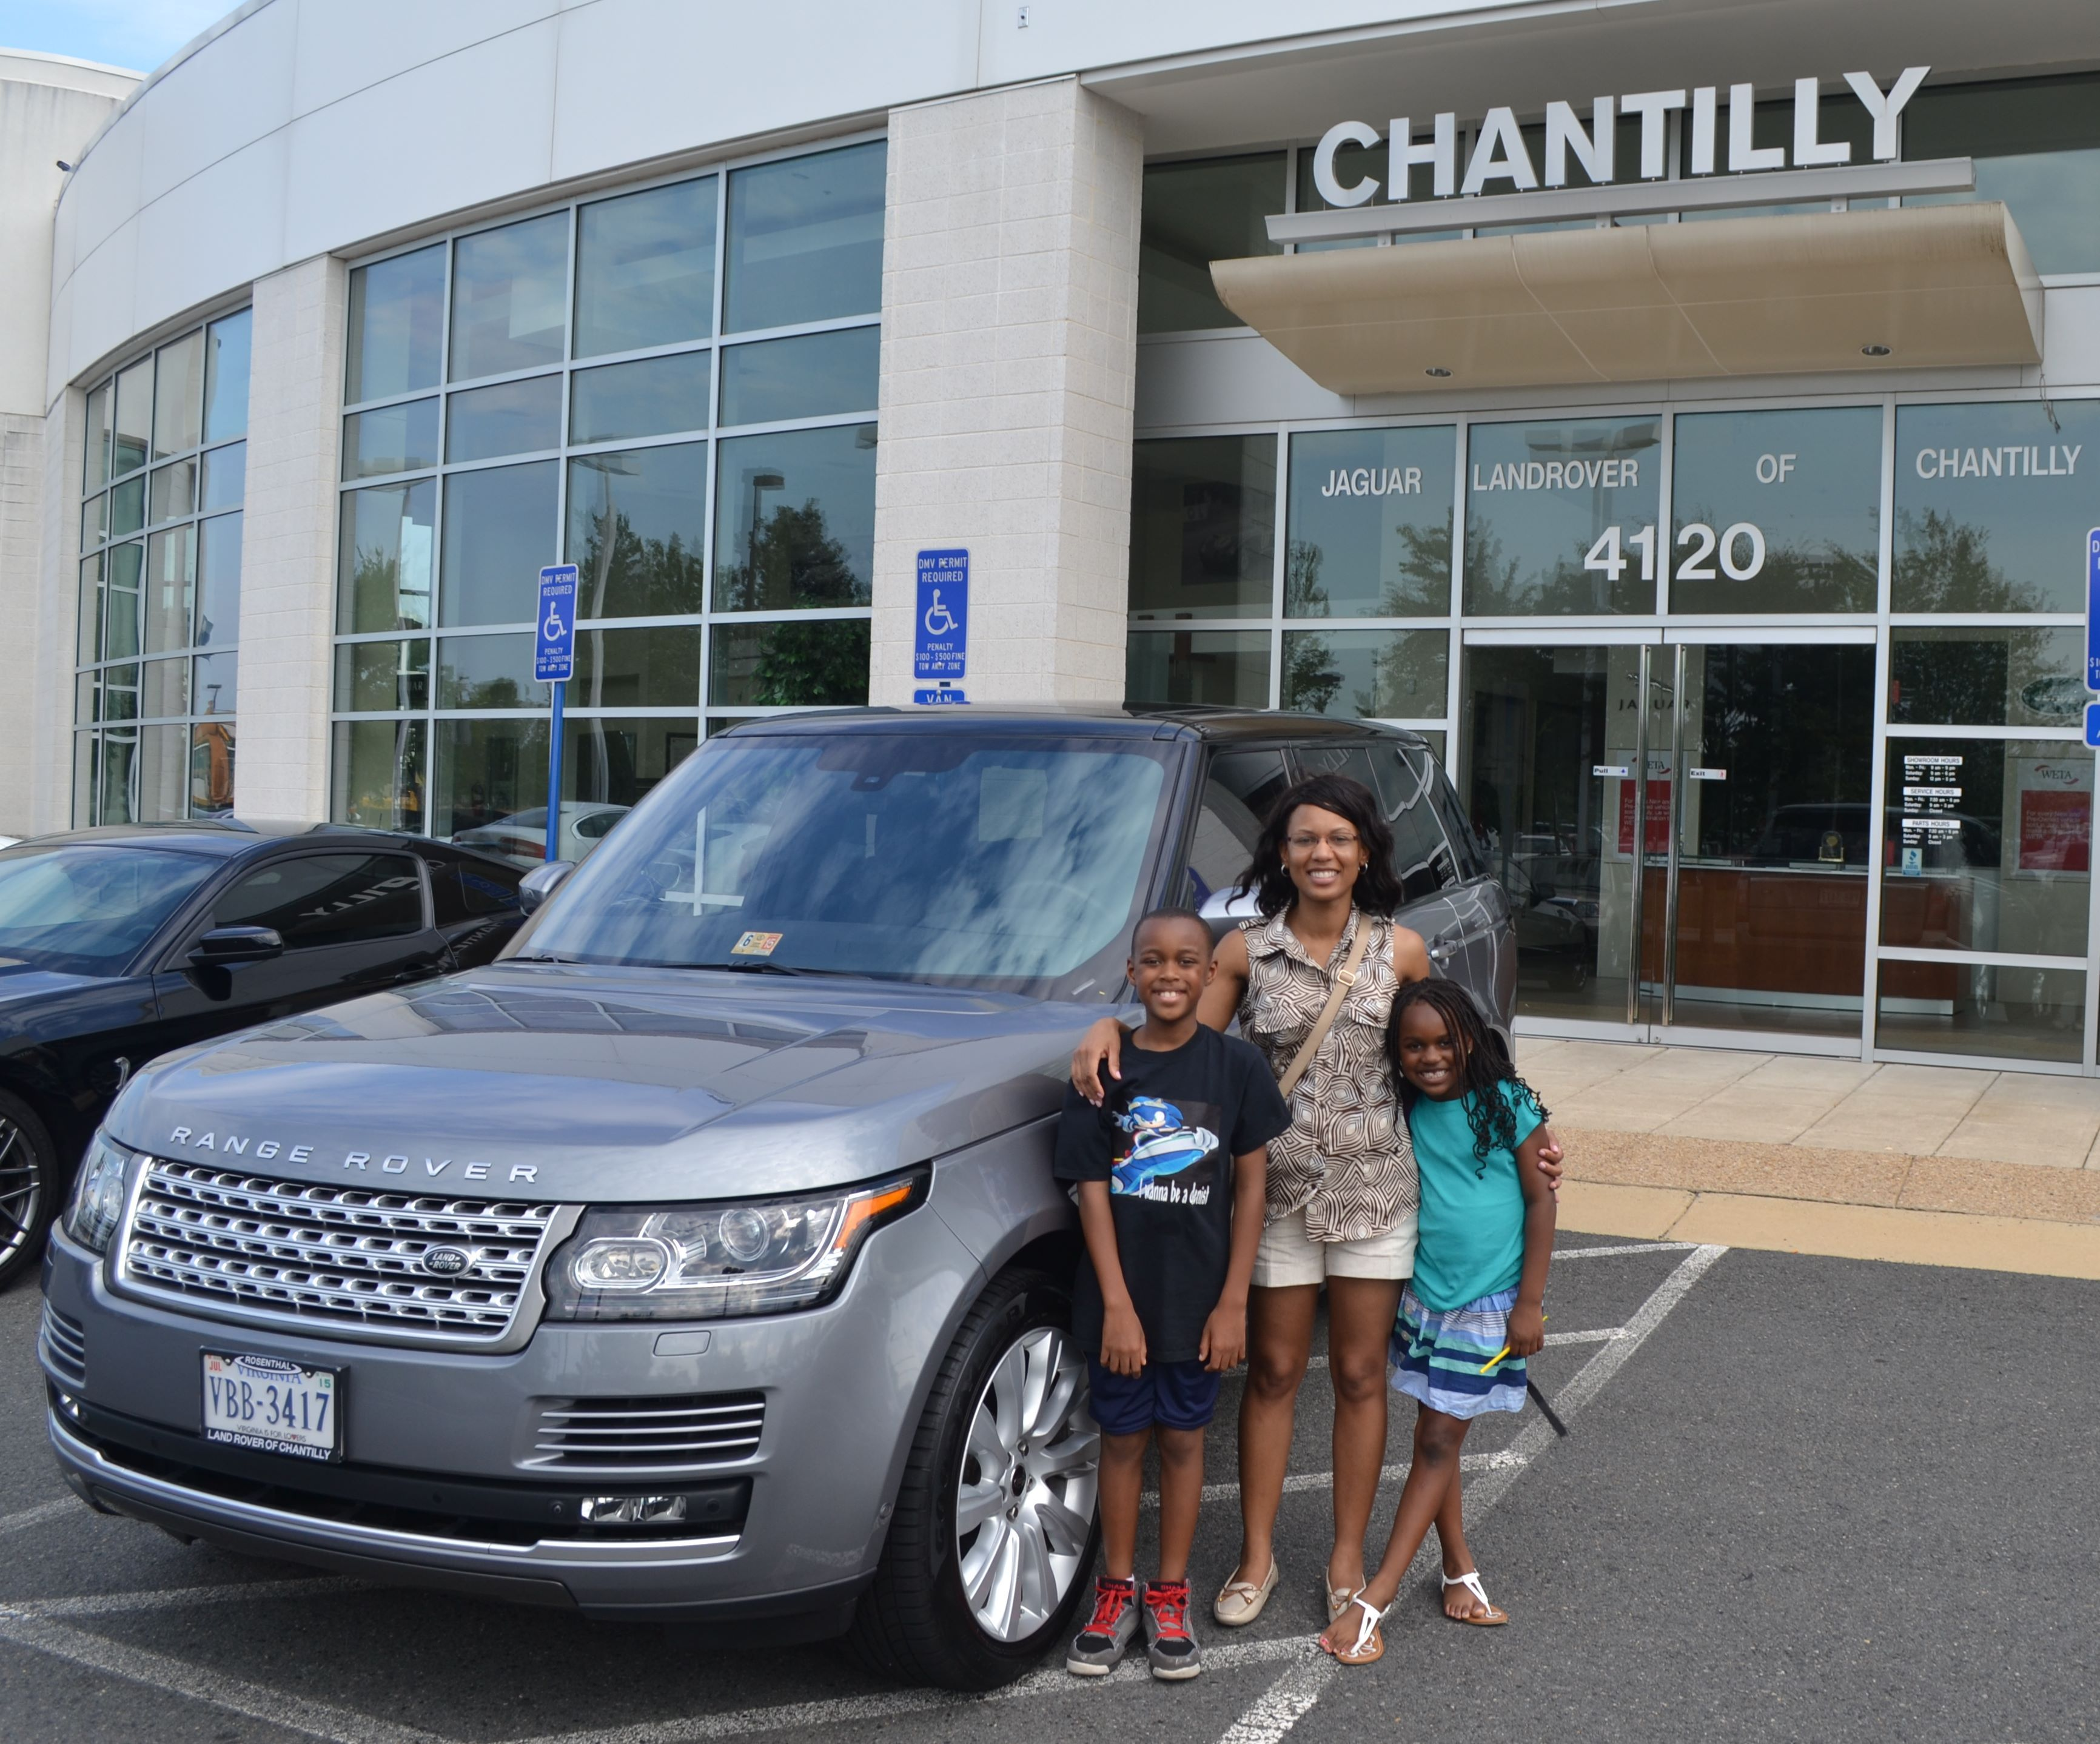 Congratulations Tamesha on the purchase of your new RANGE ROVER! The